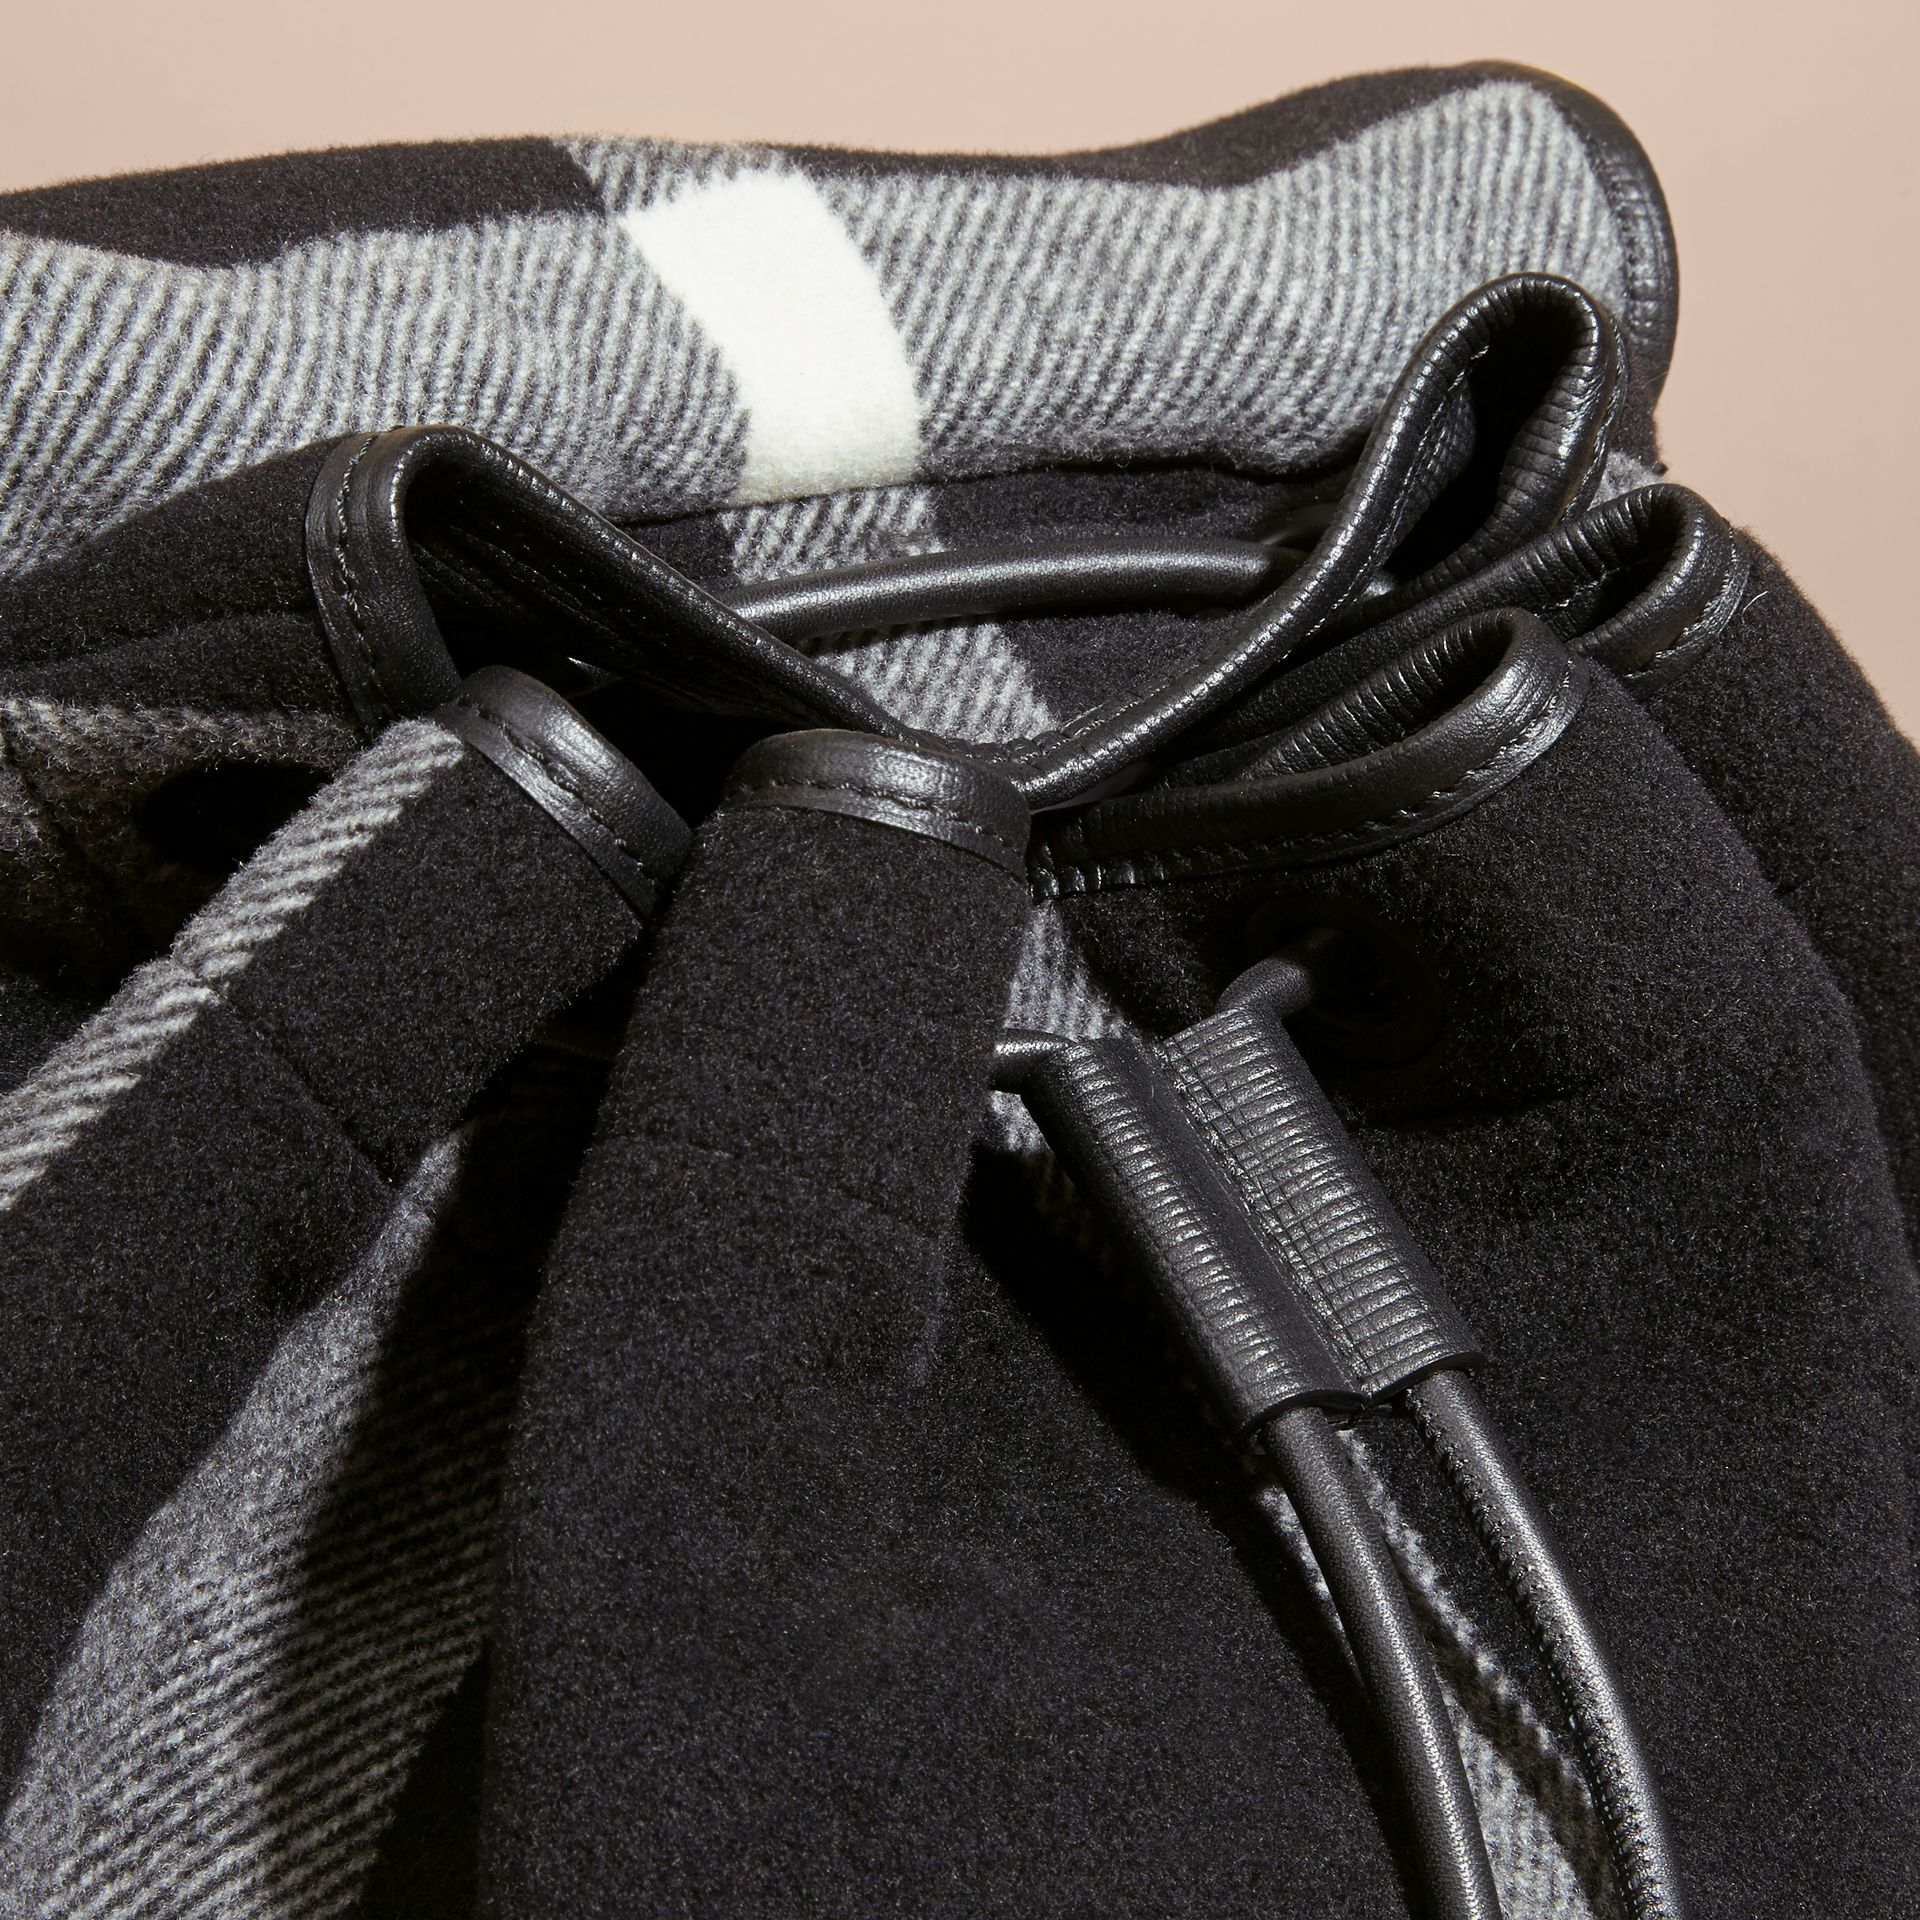 Black The Large Rucksack in Check Wool Blend and Leather Black - gallery image 2